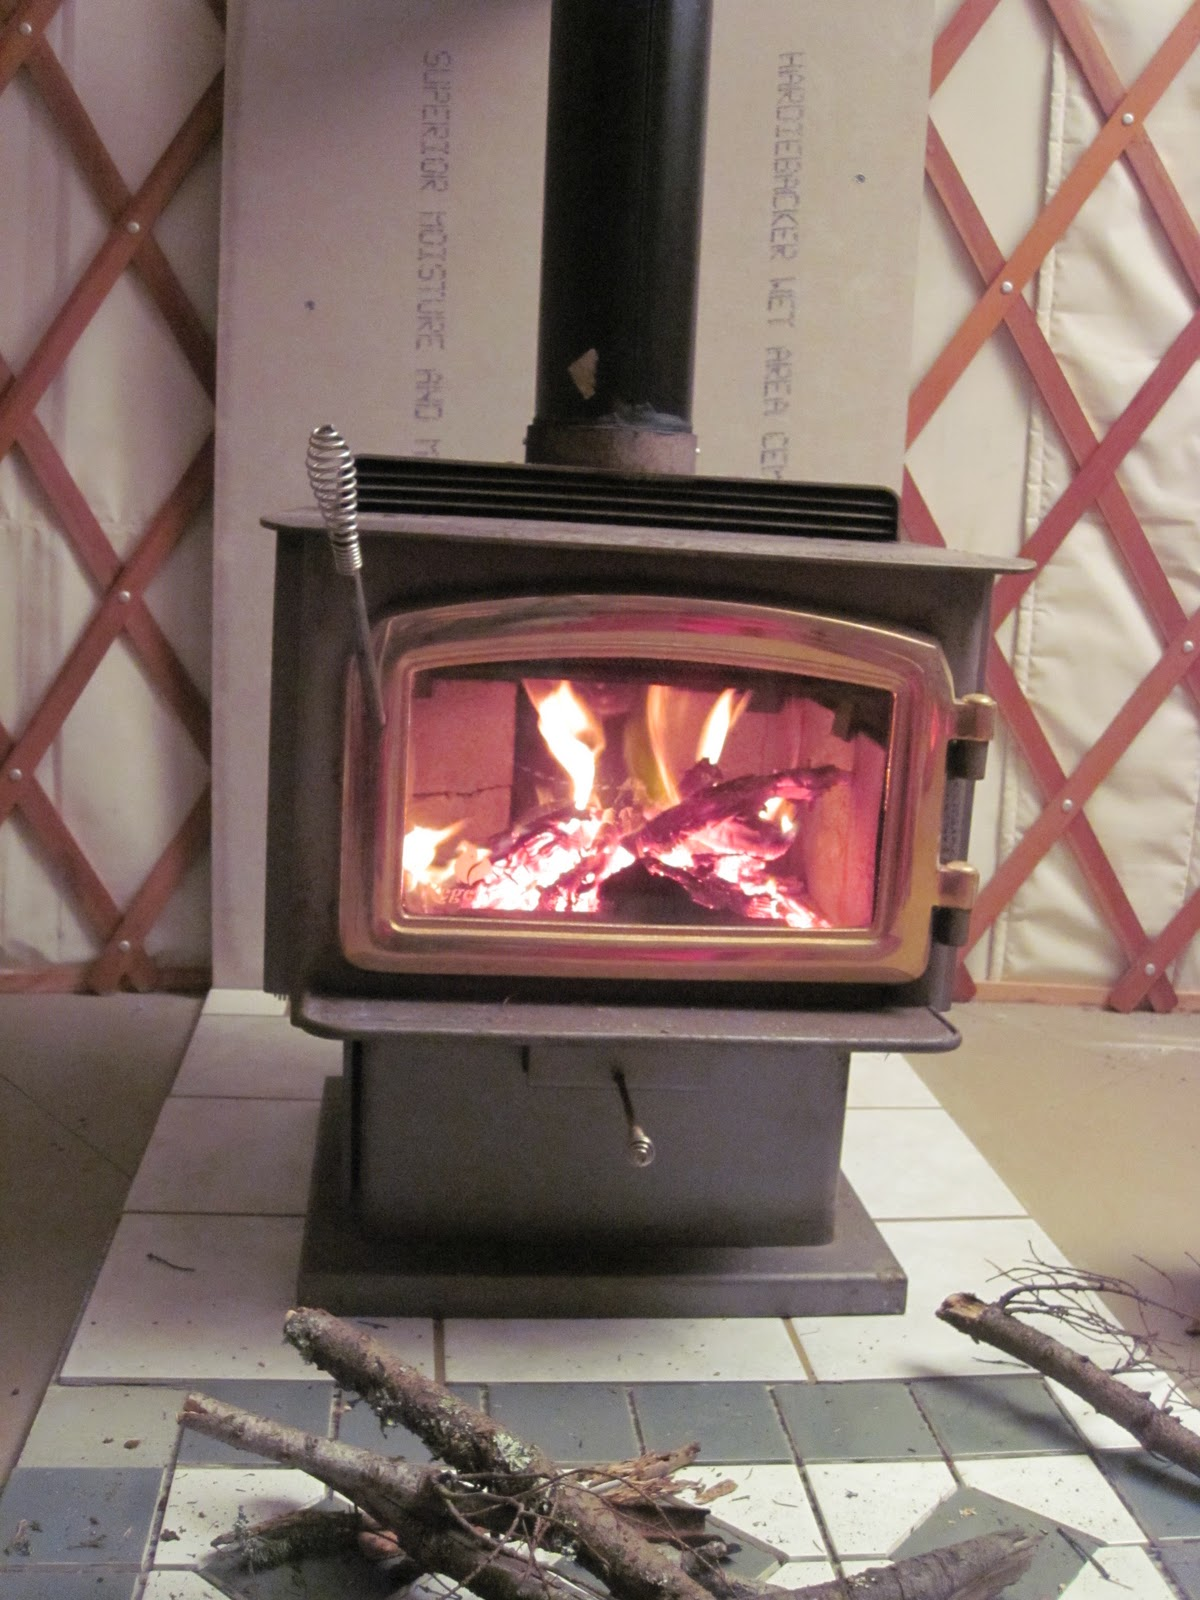 jay builds a house woodstove in a yurt